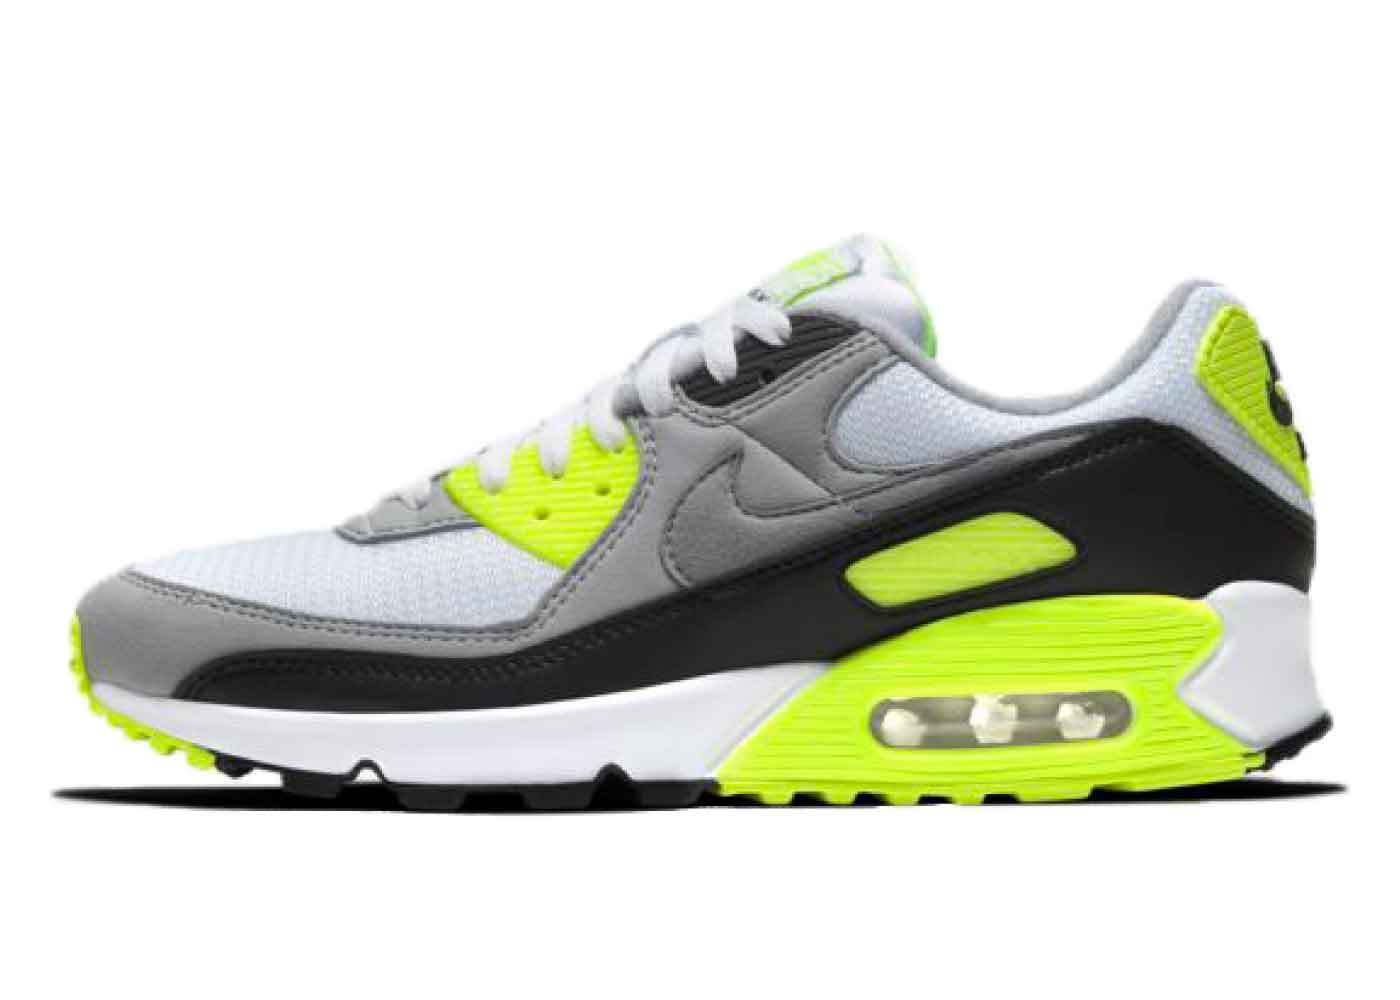 Nike Air Max 90 Volt/ Particle Greyの写真